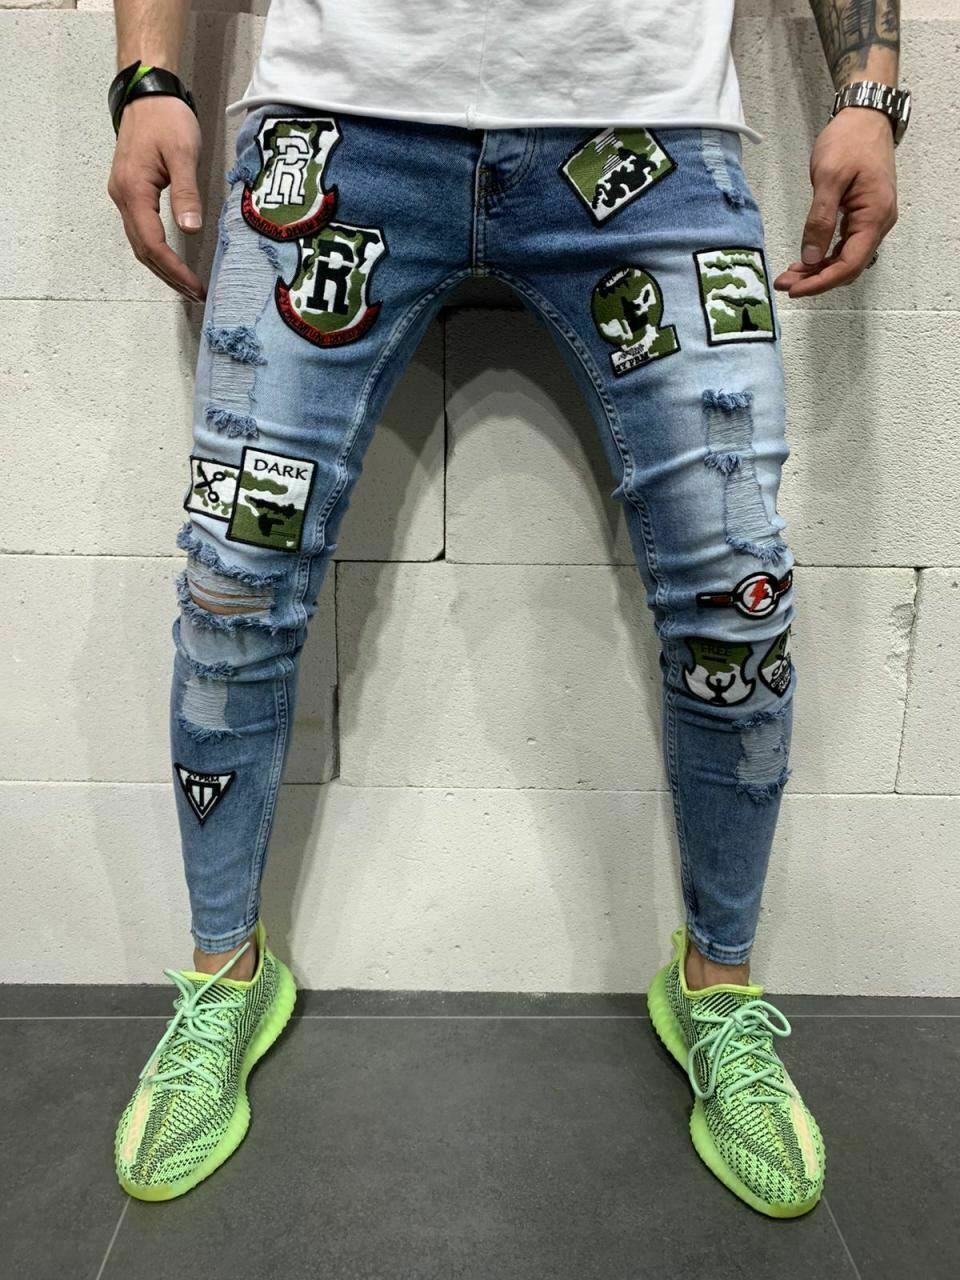 2020 2020 Men Badge Hip Hop Skinny Jeans Fashion Designer Stretch Streetwear Denim Trousers From Liumeiwan 18 23 Dhgate Com